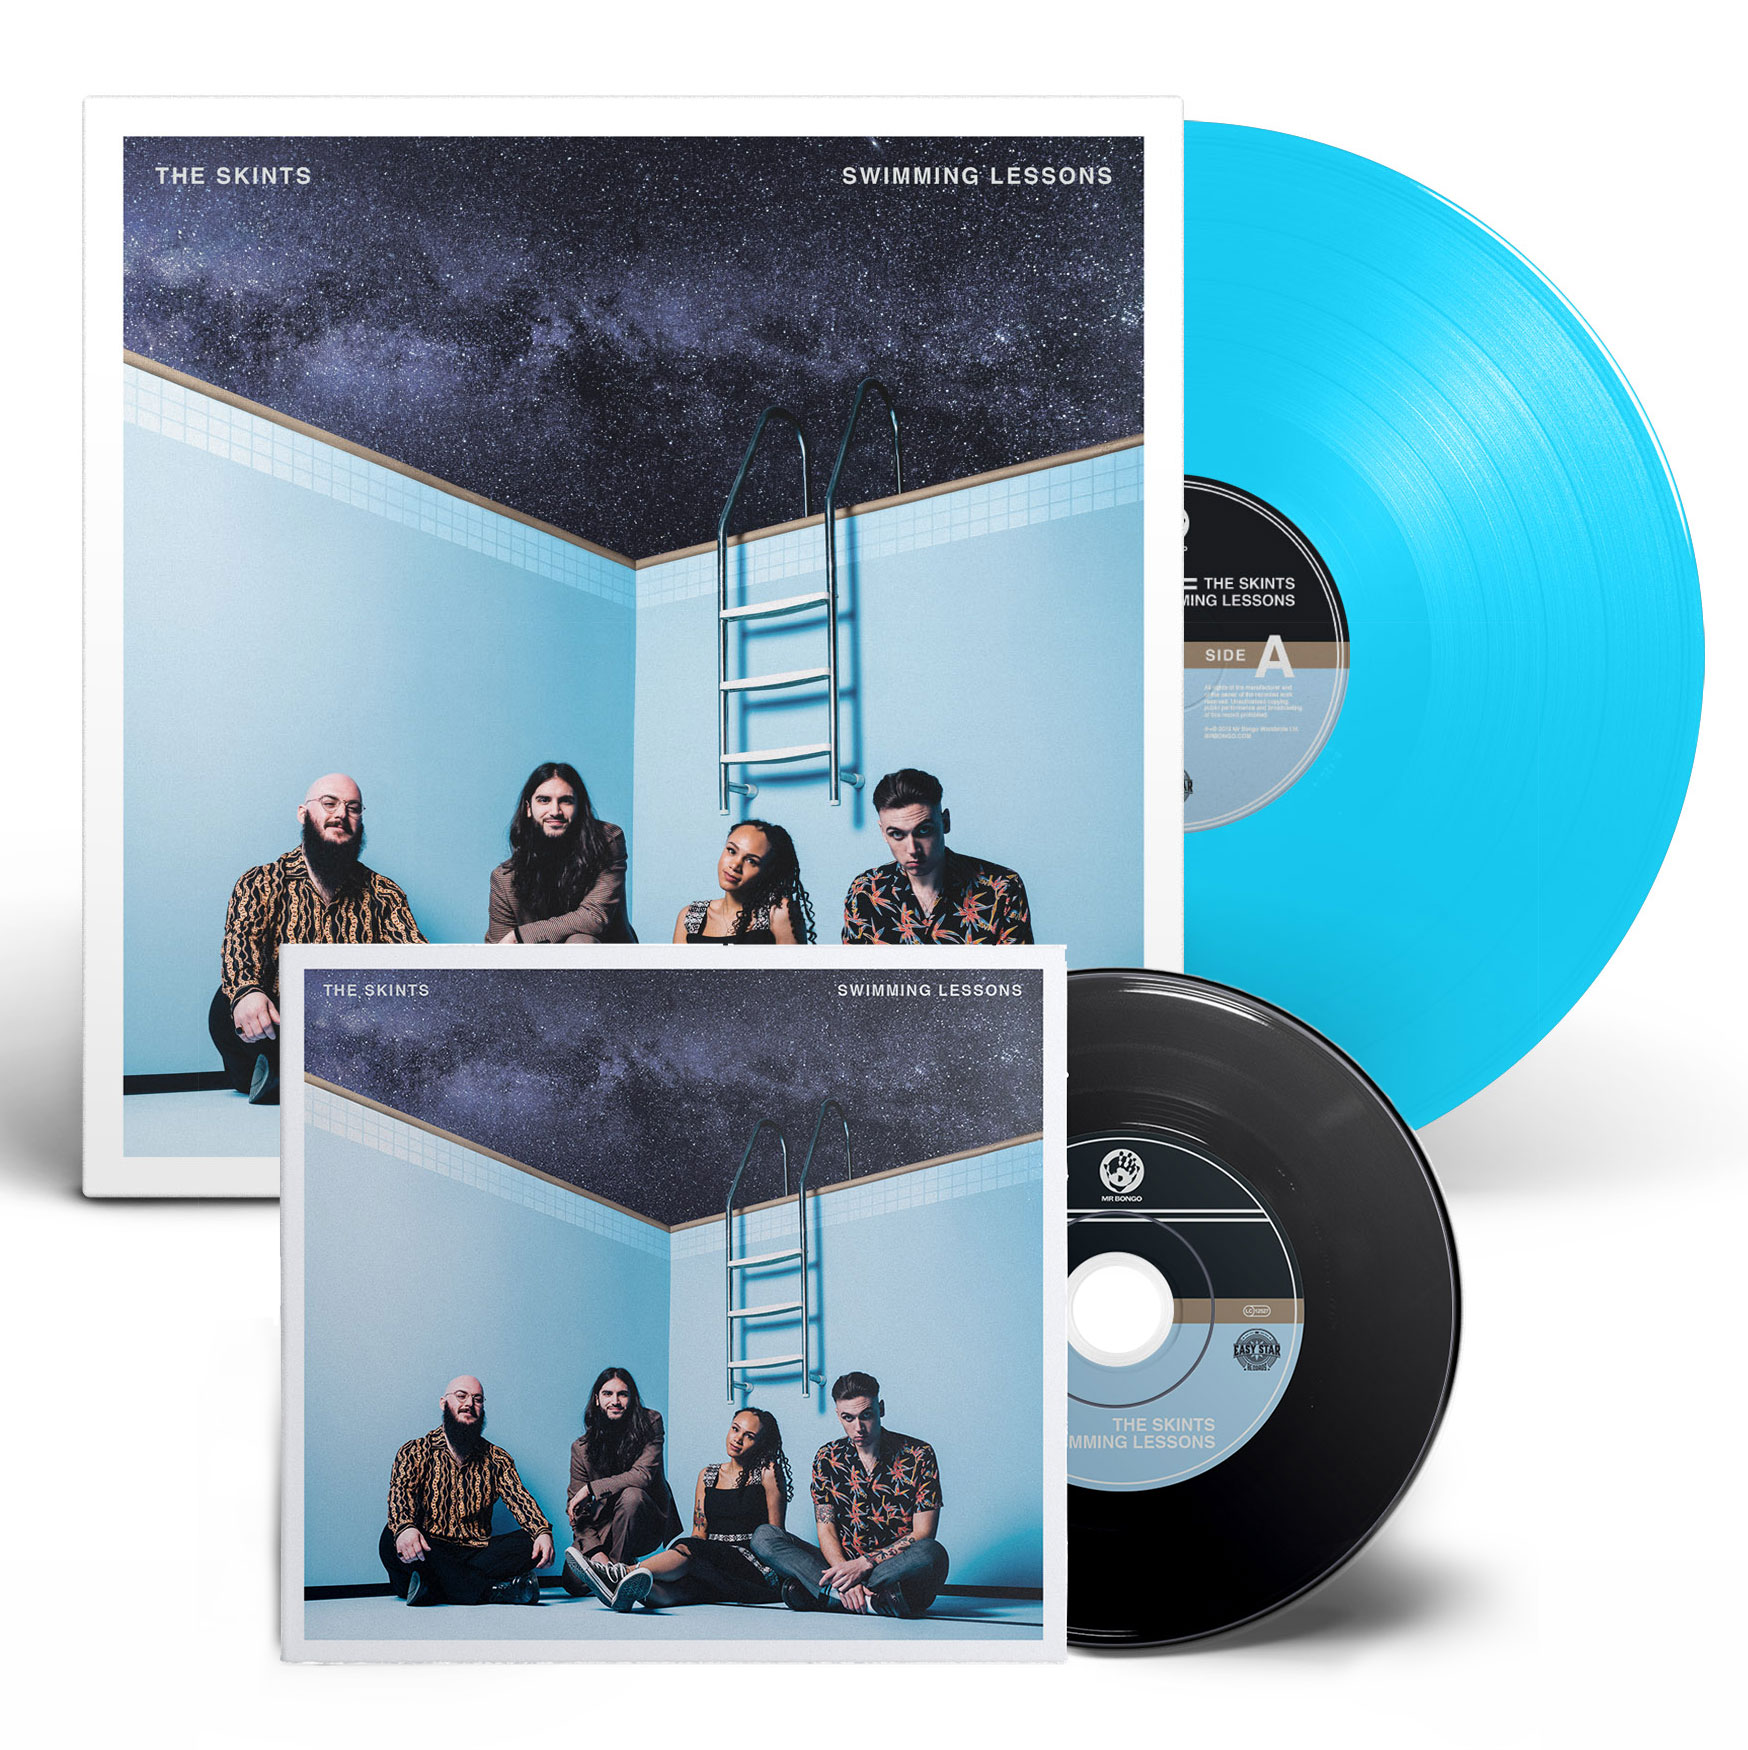 Swimming Lessons CD or LP pre-order - The skints usd